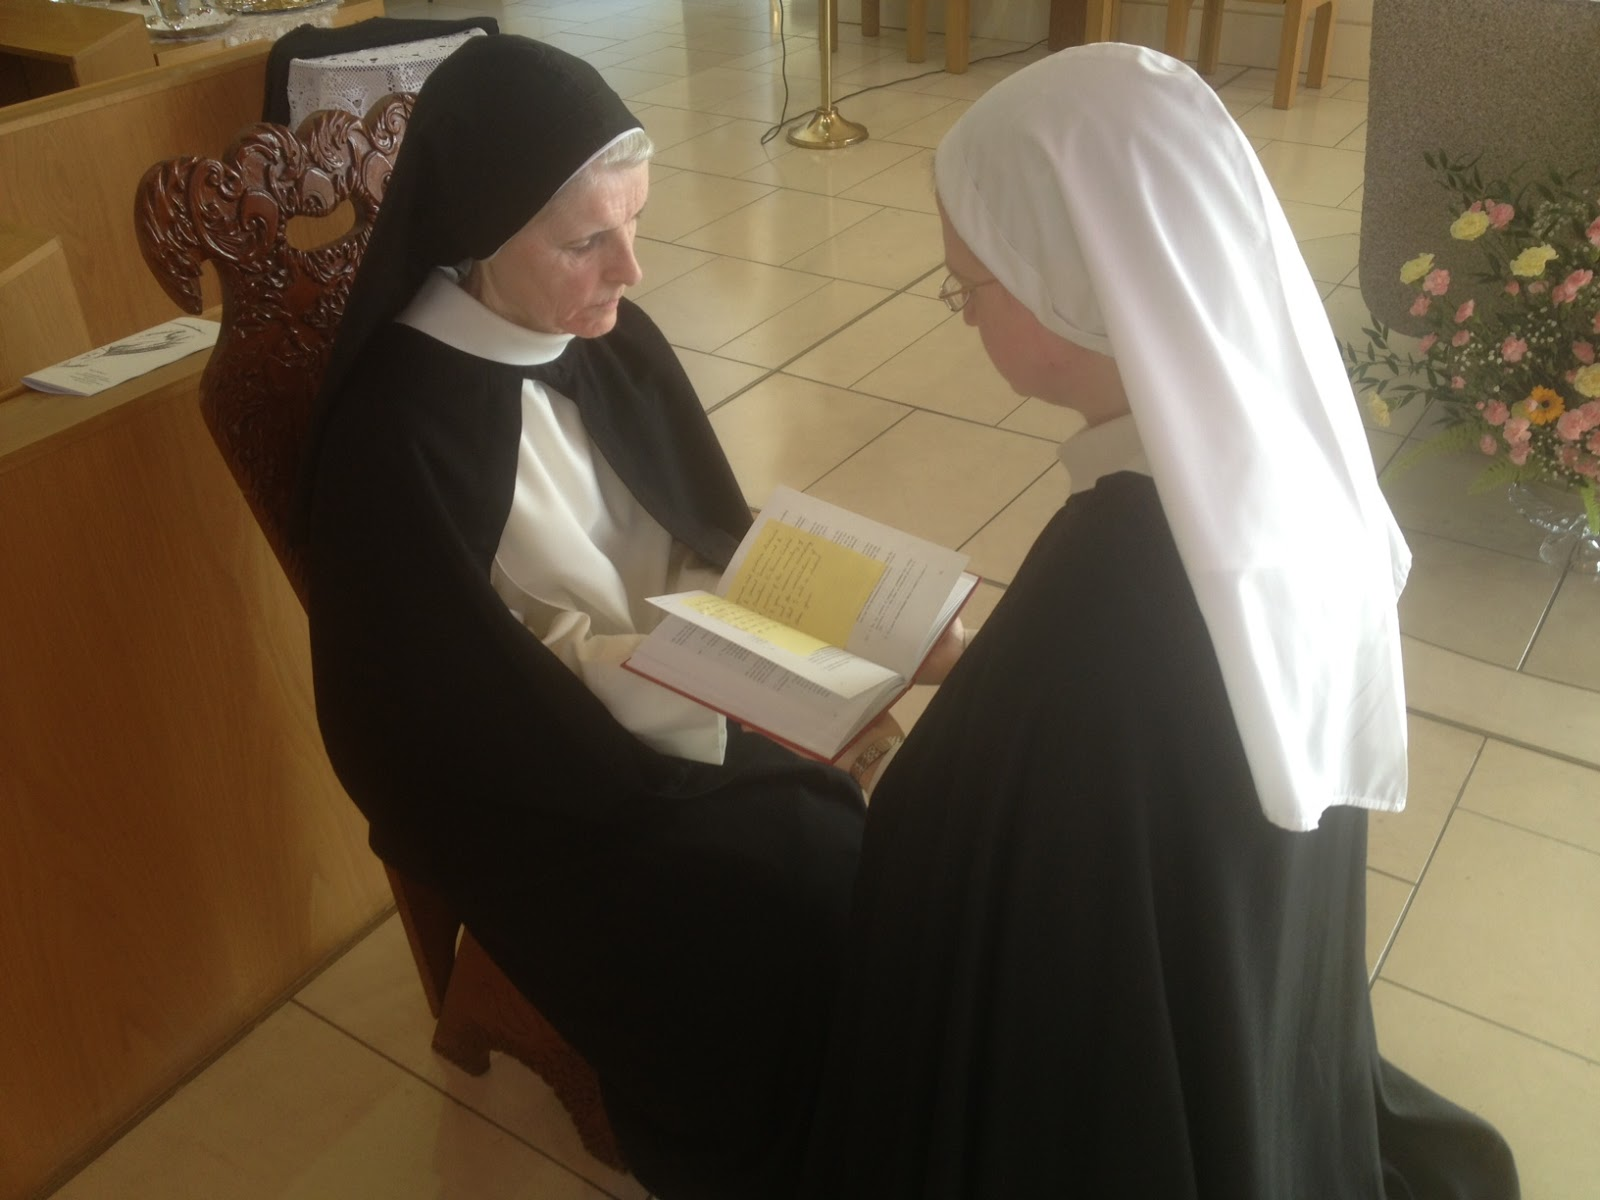 Sr mary cathy makes profession in the hands of the prioress sr mary